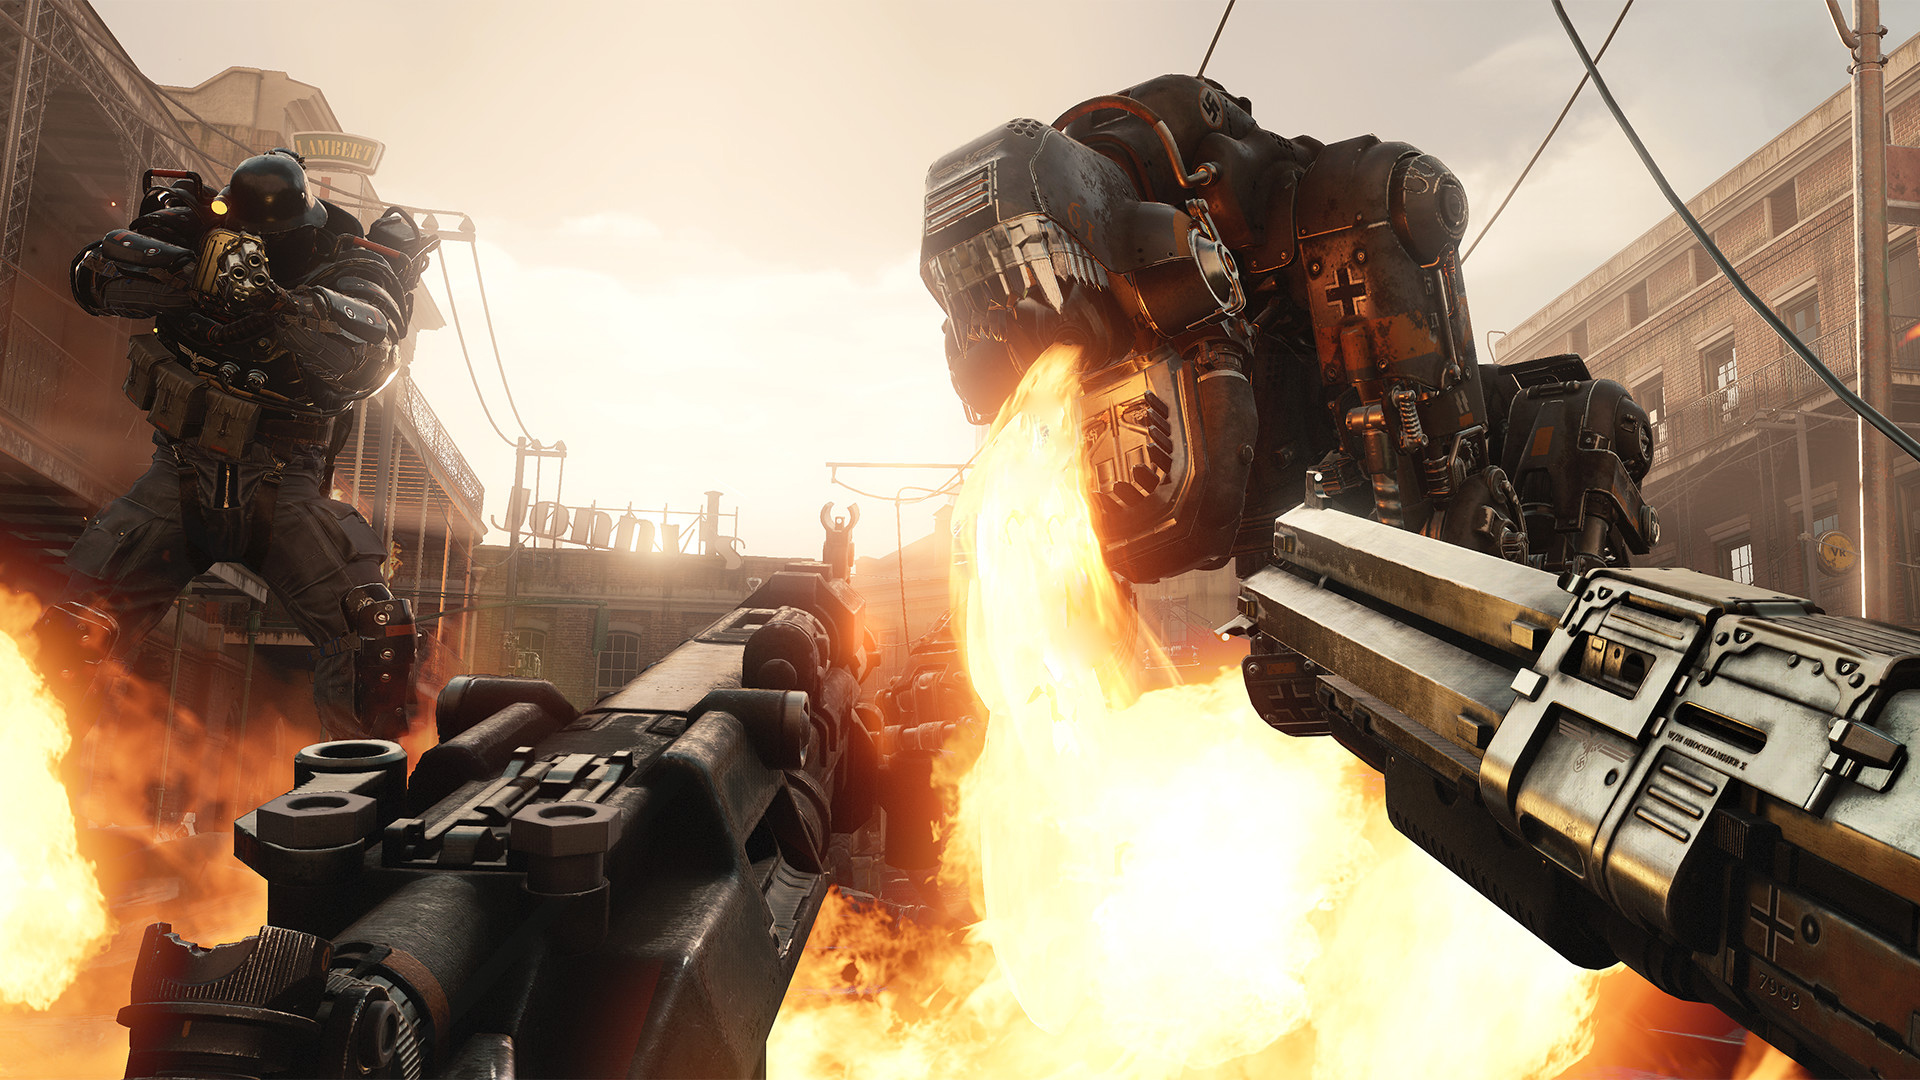 The Wolfenstein II demo includes the full first level screenshot